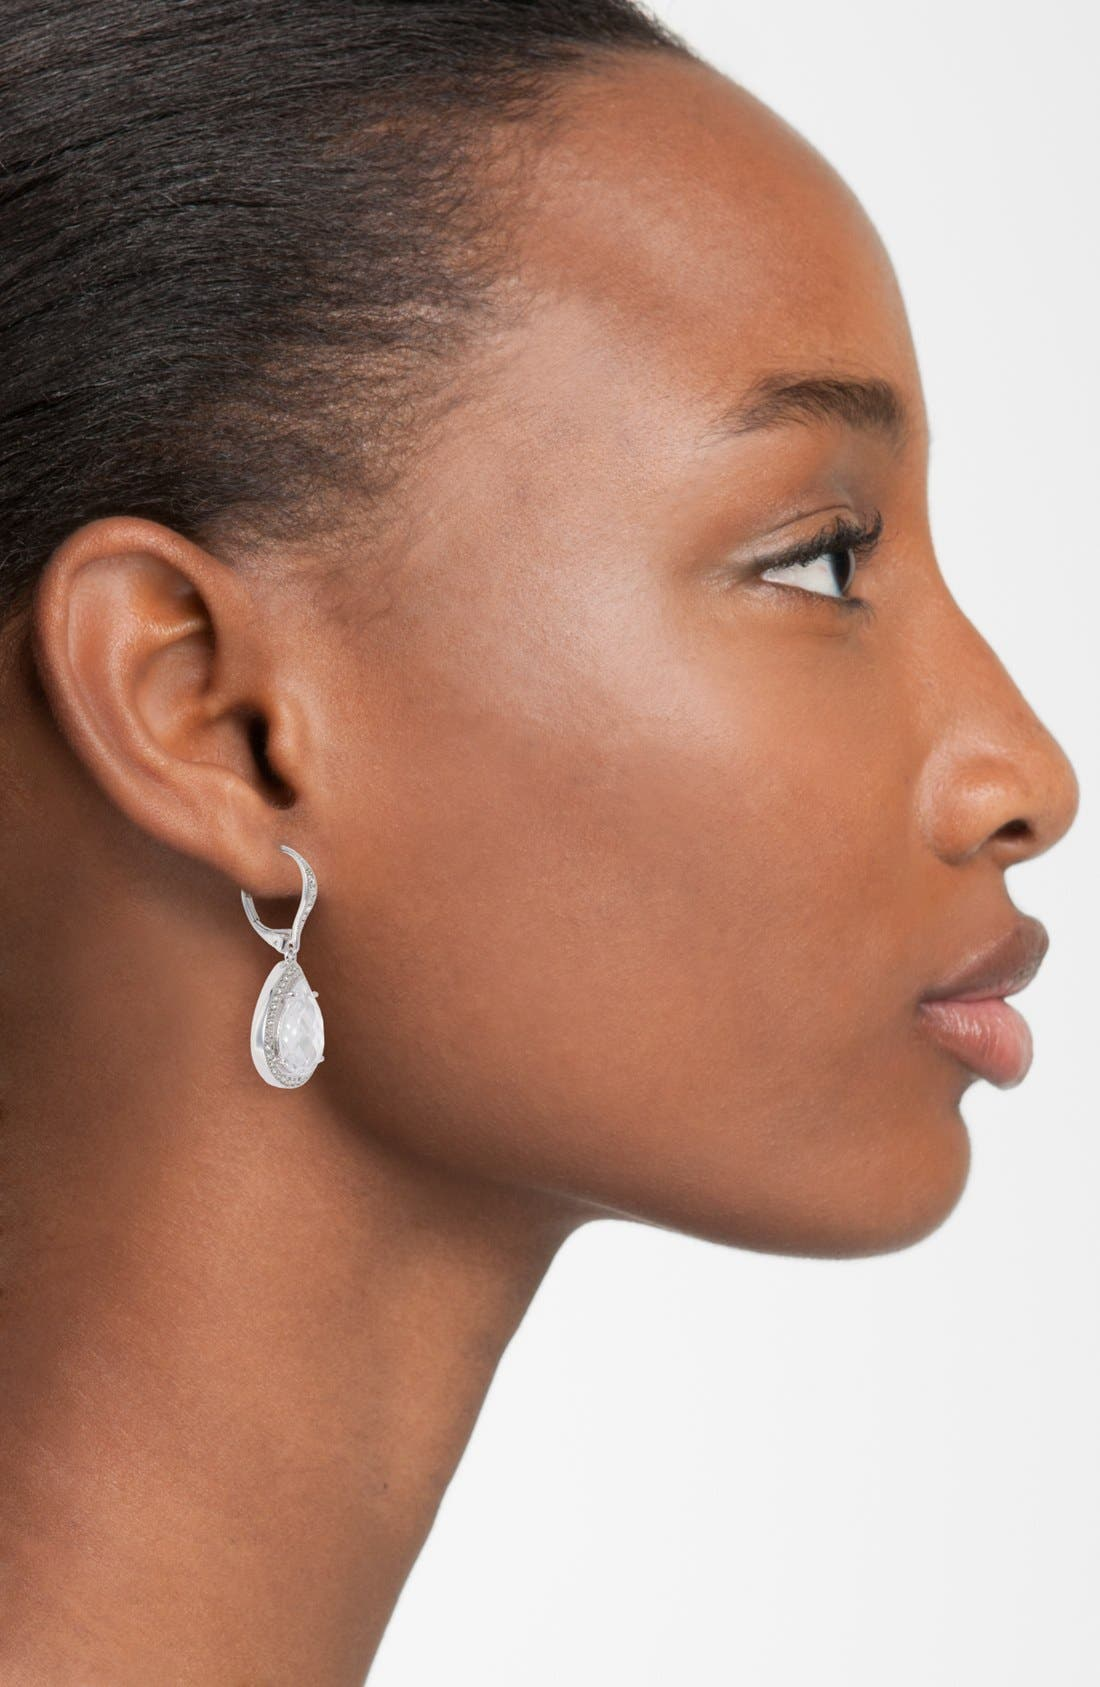 Pear Drop Earrings,                             Alternate thumbnail 3, color,                             CLEAR CRYSTAL/ SILVER